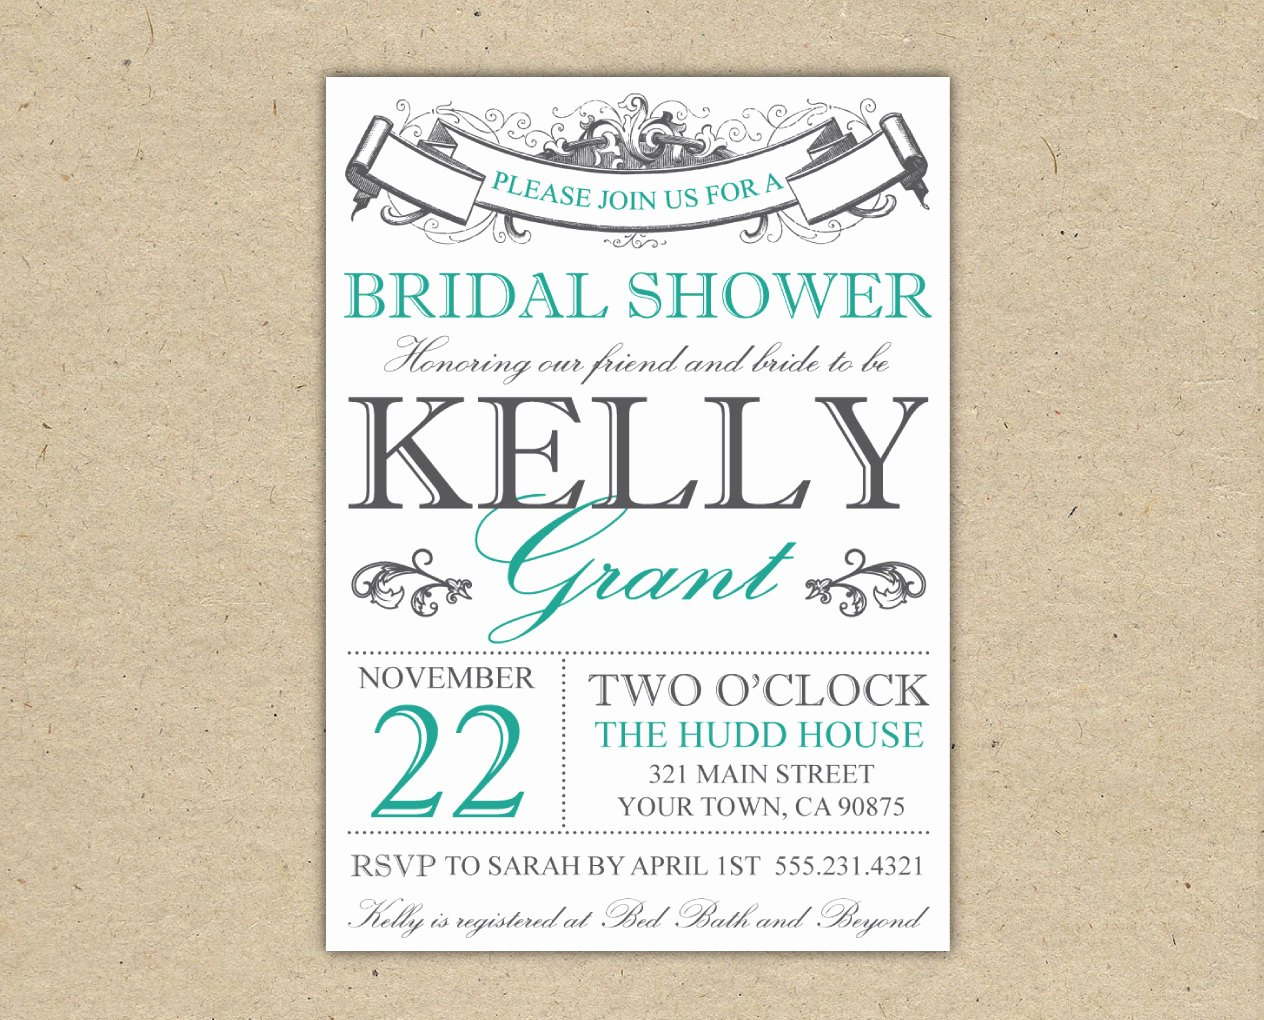 Free Shower Invitation Template Lovely Bridal Shower Invitation Templates